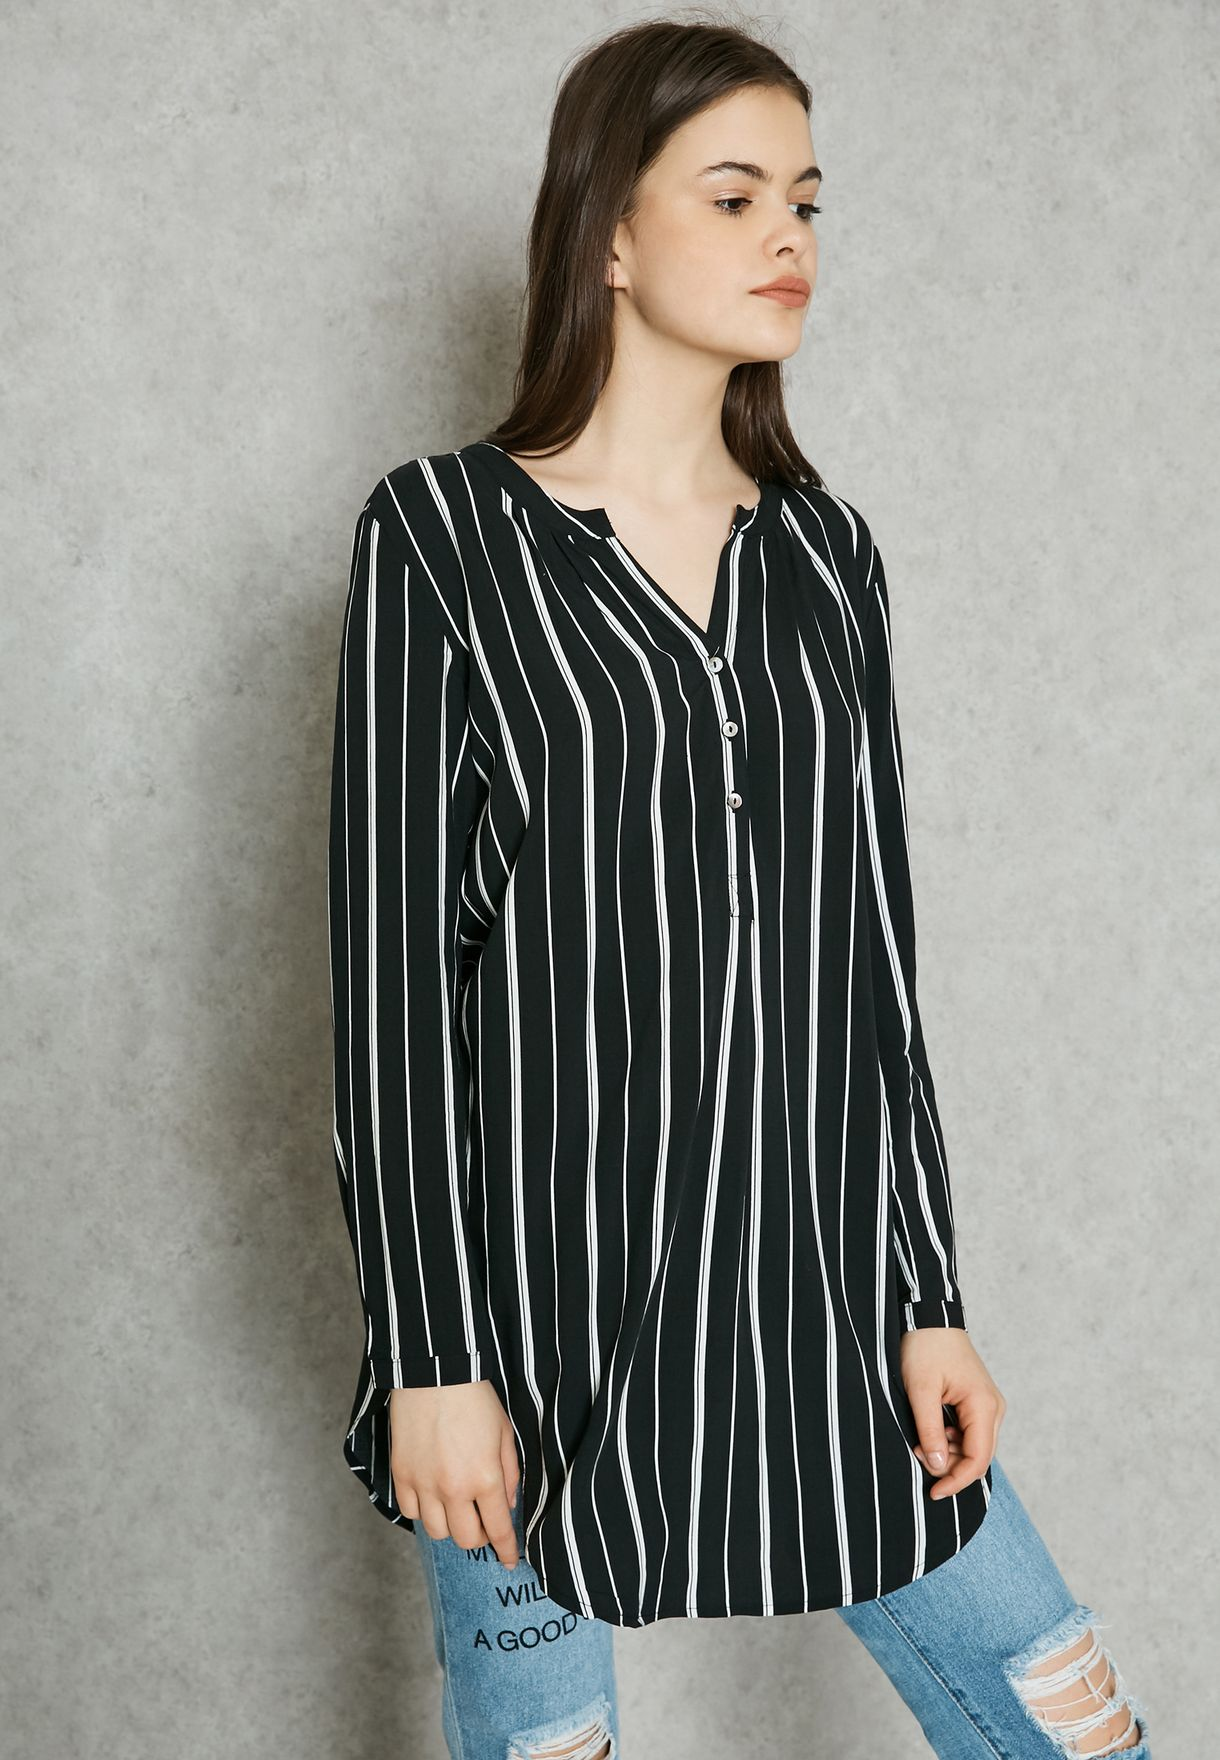 e344847917cff Shop Only stripes Essential Longline Top 15134091 for Women in UAE ...